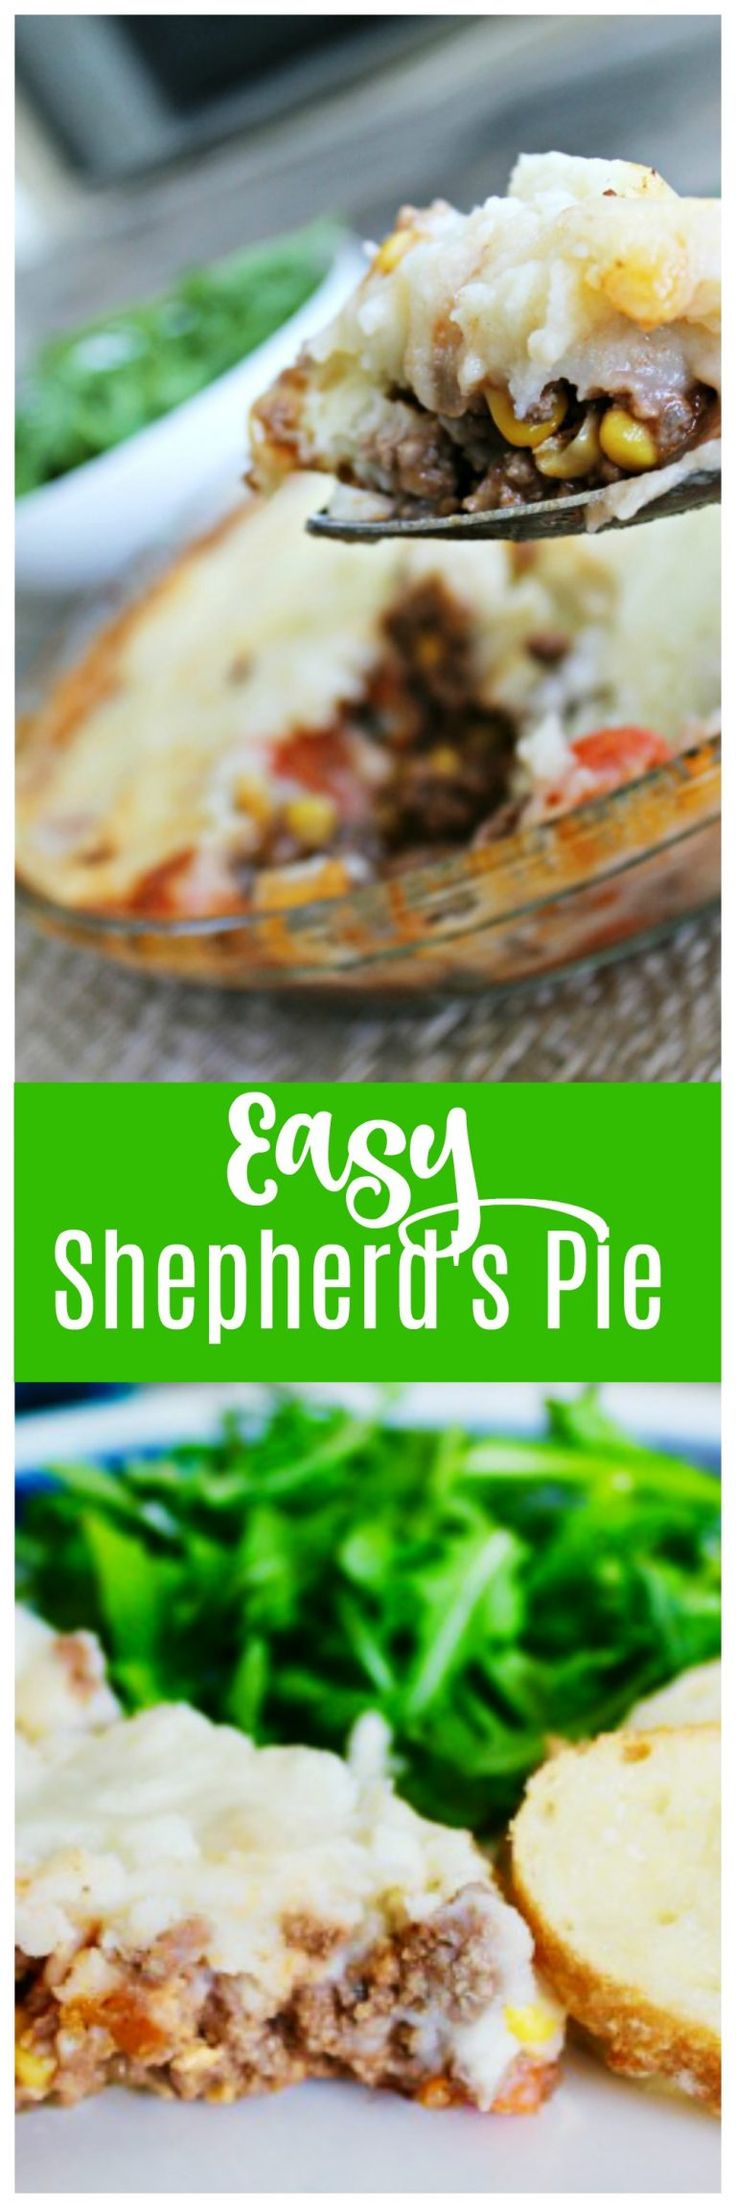 Simple Shepherds Pie recipe with hamburger, carrots, corn and potatoes baked into a casserole that is sure to be a classic weeknight favorite.    #easy #shepherds #pie #recipe #recipes #casserole #stpatricksday